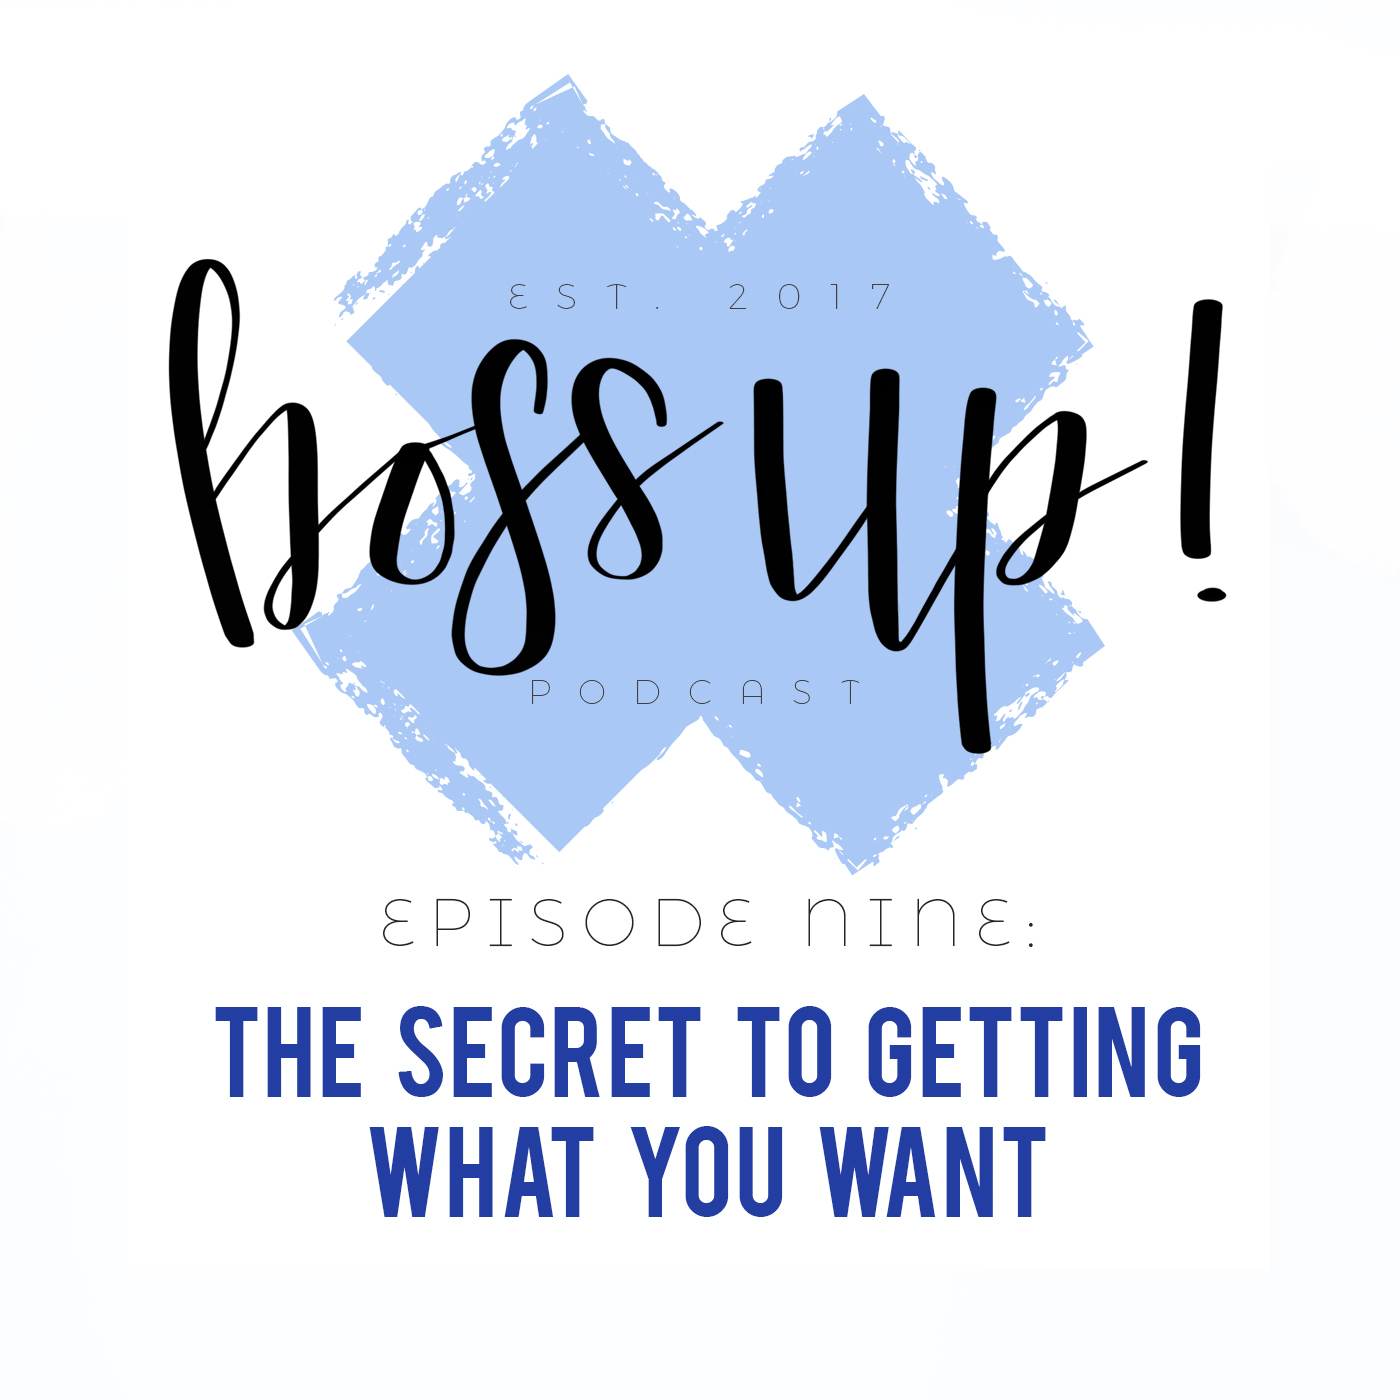 009: The Secret to Getting What You Want